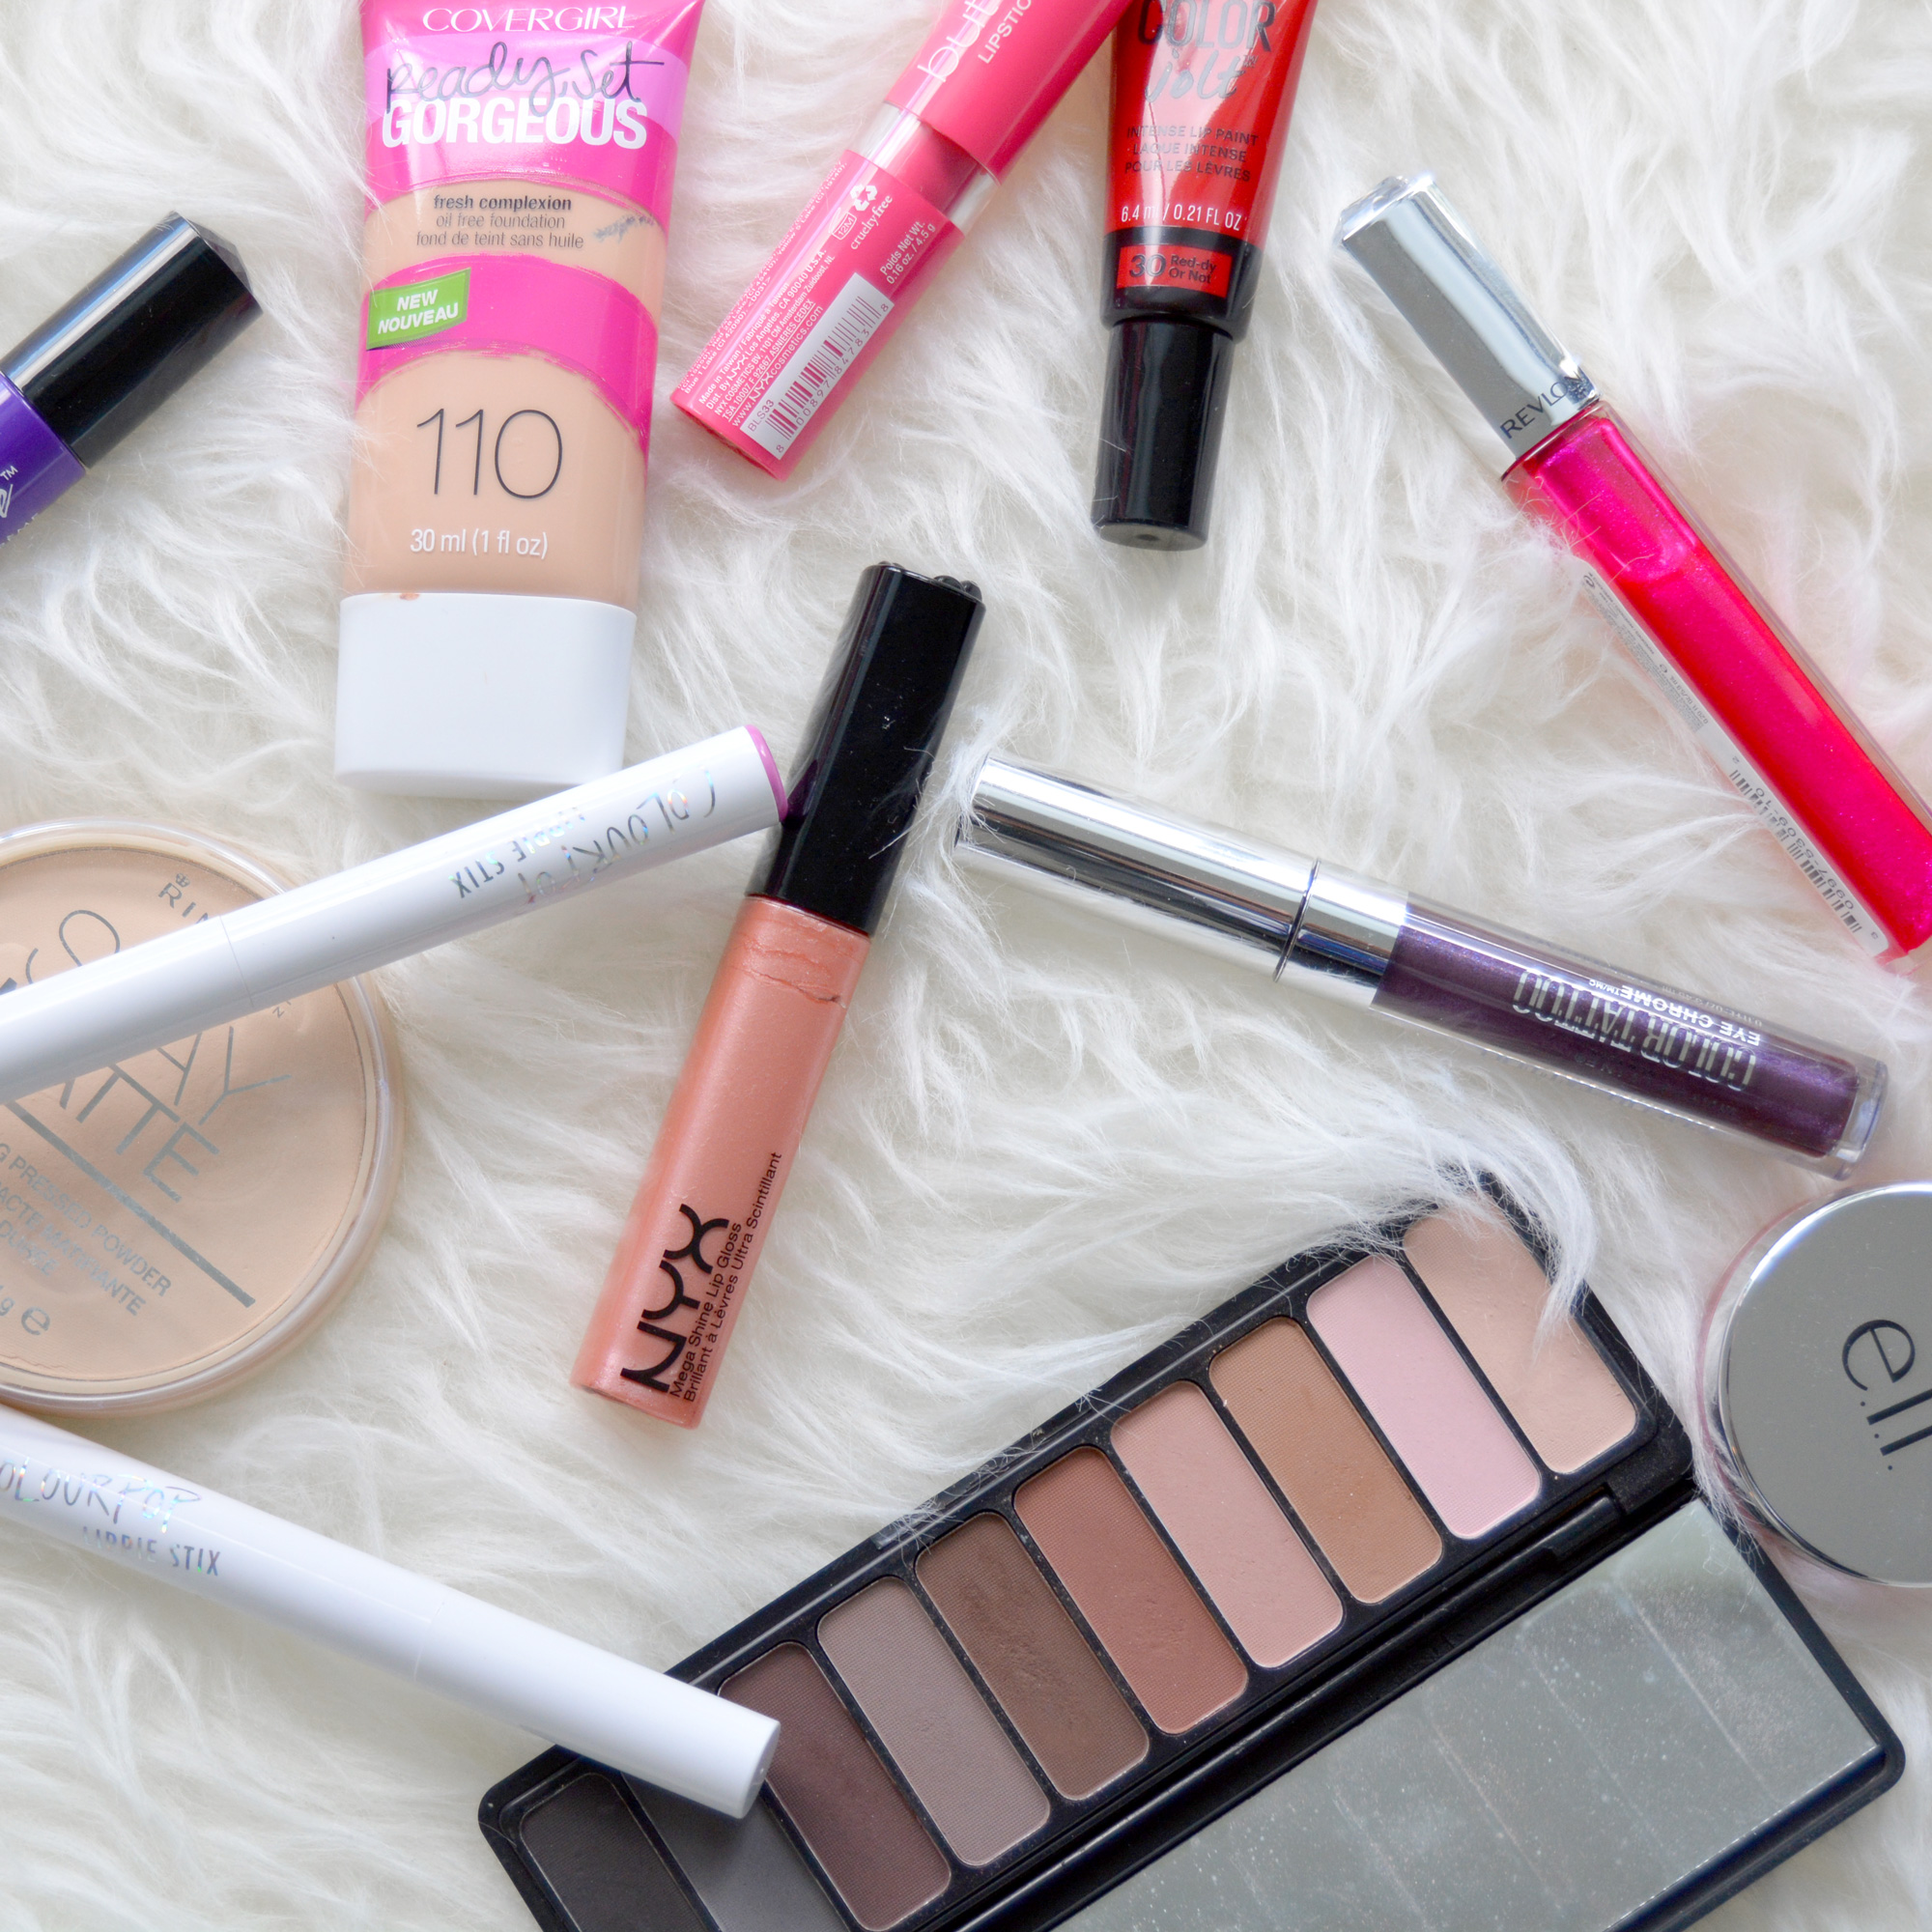 Top 5 Fall Makeup Picks Under $10